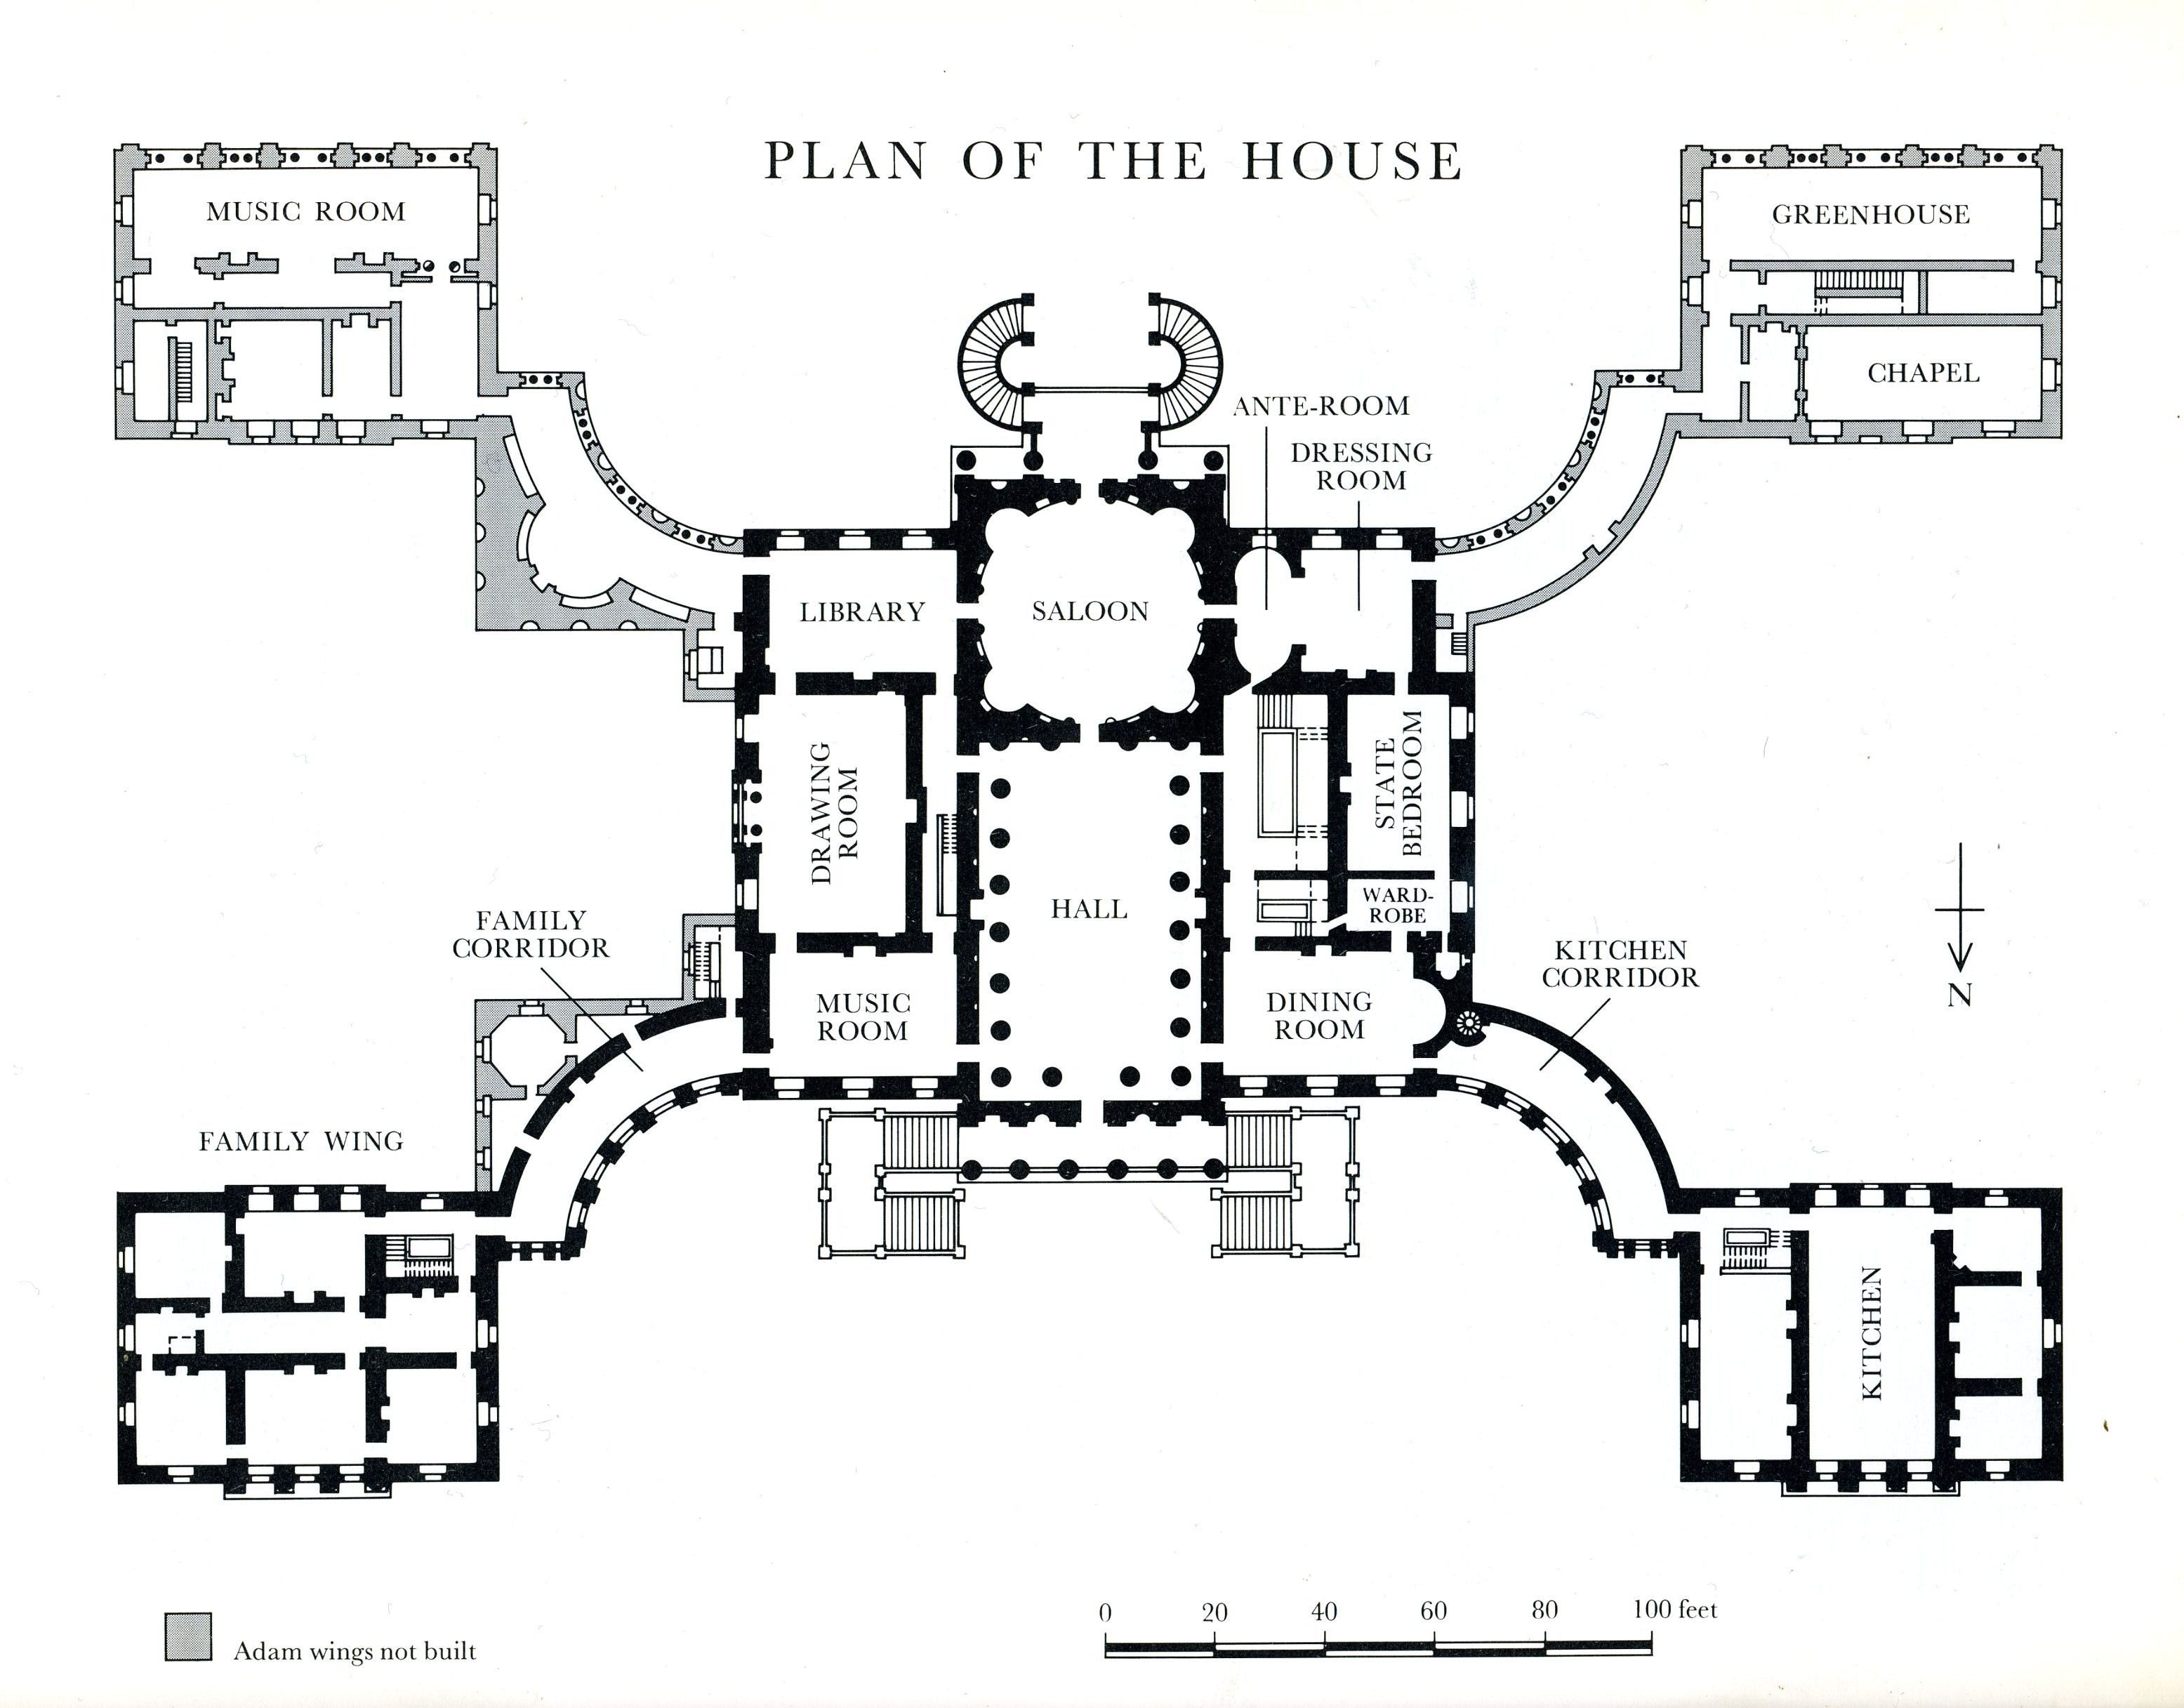 Mansion courtyard blueprint google search floorplans pinterest mansion courtyard blueprint google search malvernweather Image collections